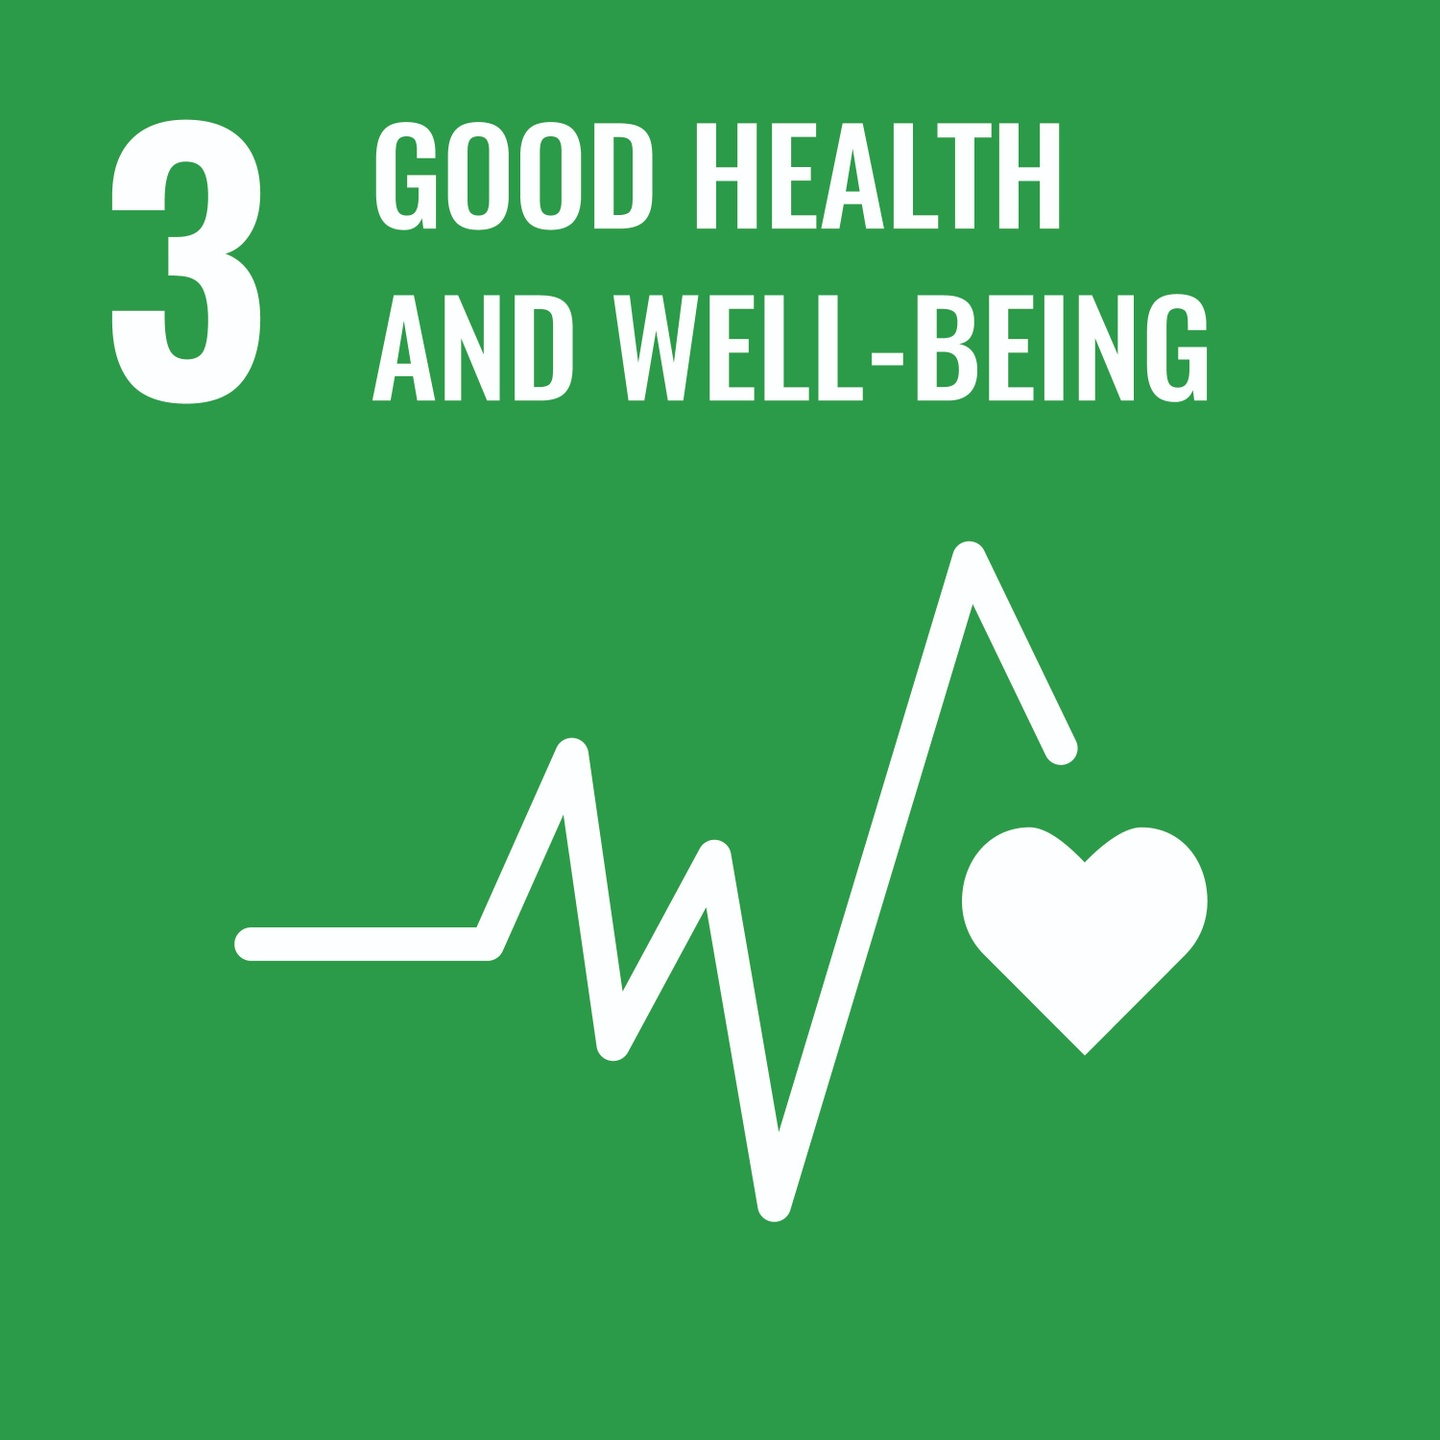 Goal 3, Good Health and Well-Being, of The UN's Sustainable Development Goals (SDGs)